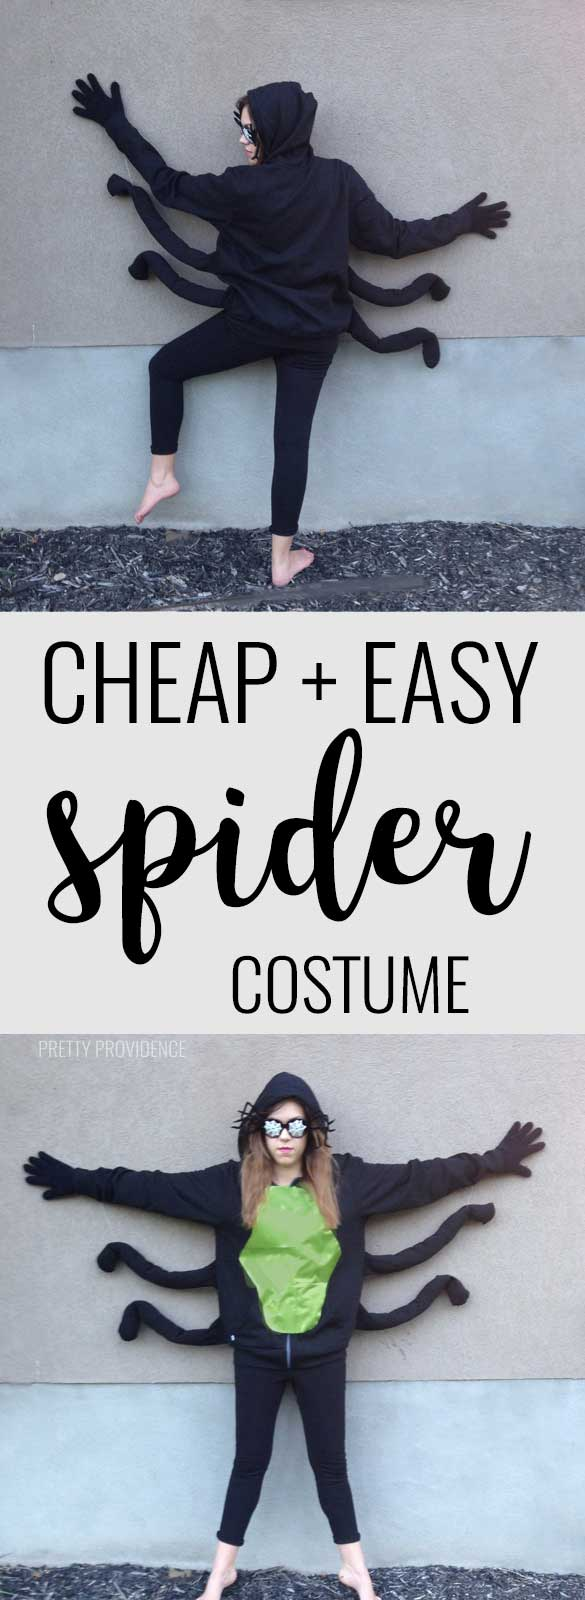 Spider costume that is easy and cheap to make! and no sewing required!